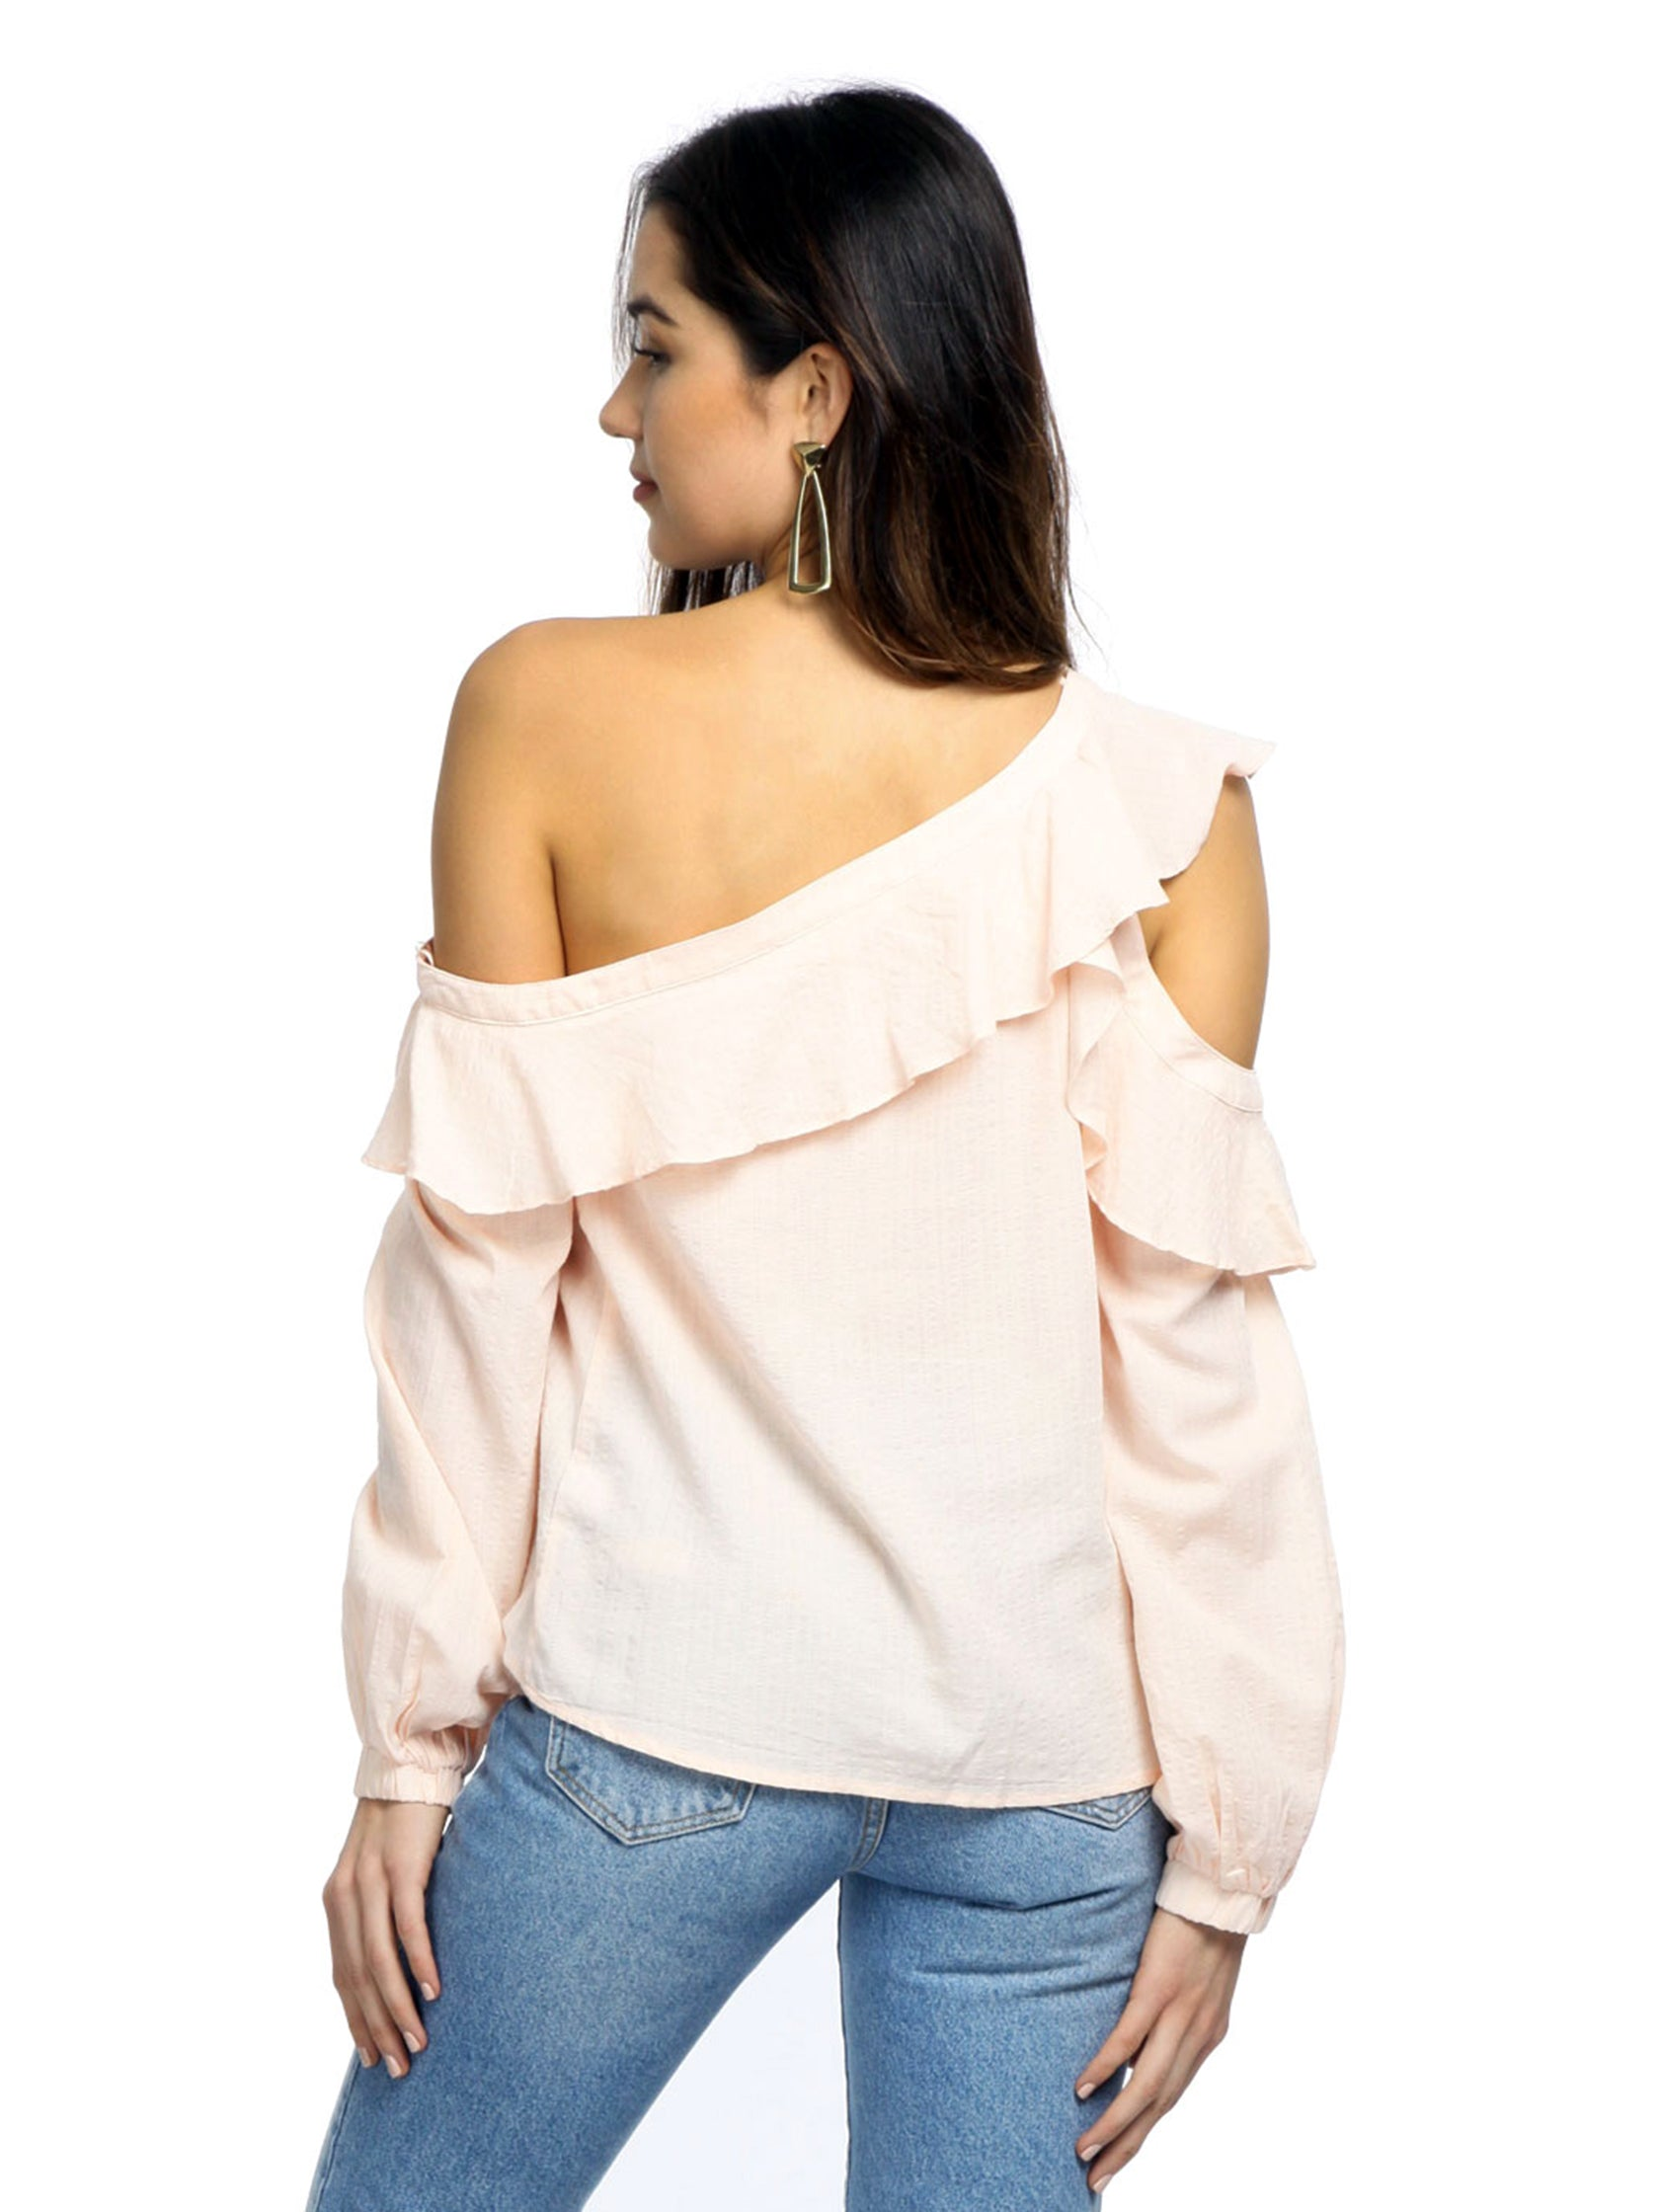 Girl wearing a top rental from ASTR called Paige Off The Shoulder Blouse